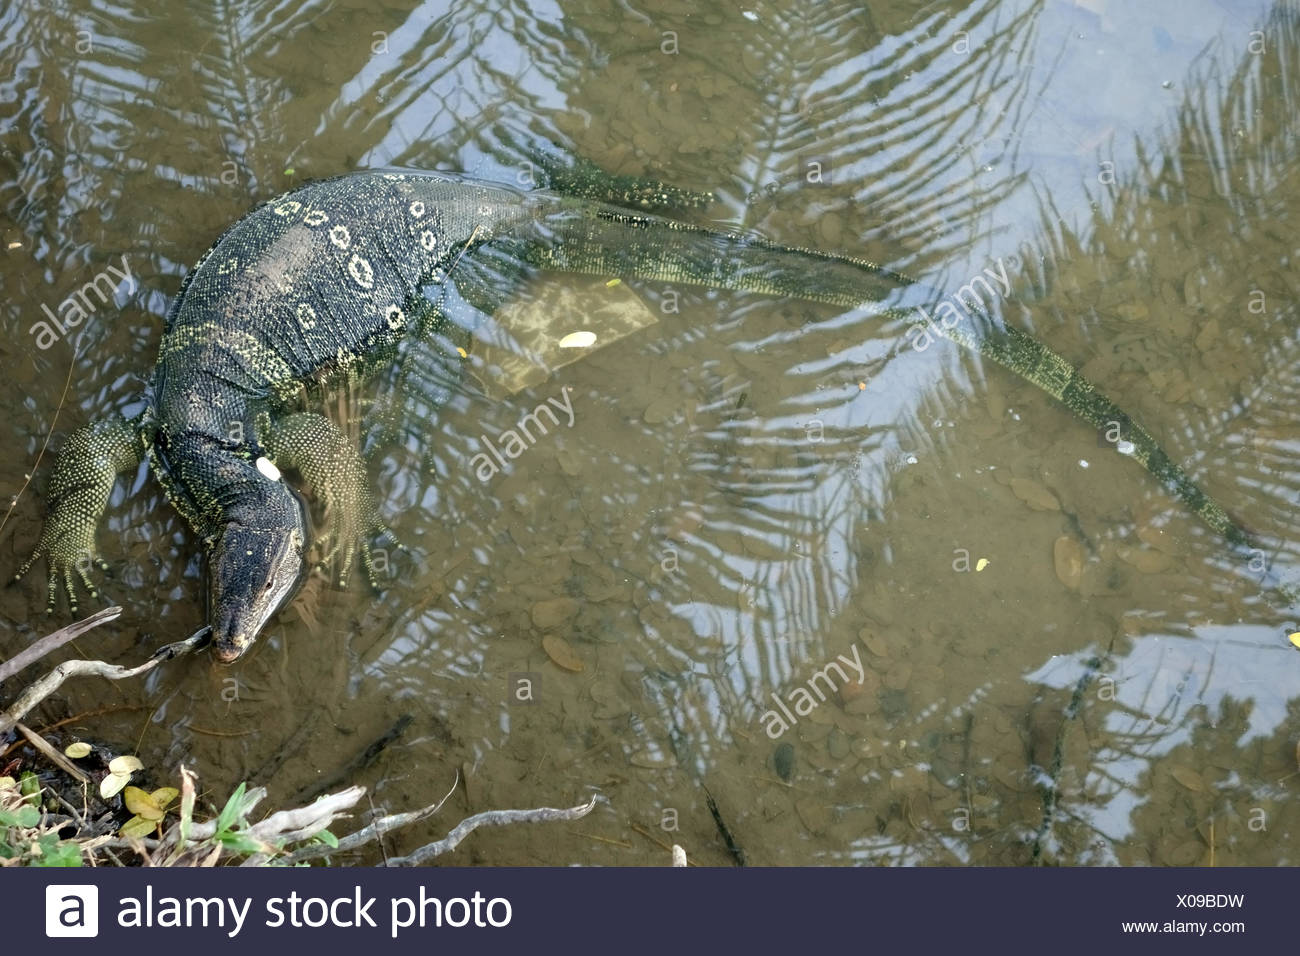 A large water monitor lizard, Varanus salvator, in water at the edge of the lake in  Lumphini Park in the centre of Bangkok - Stock Image